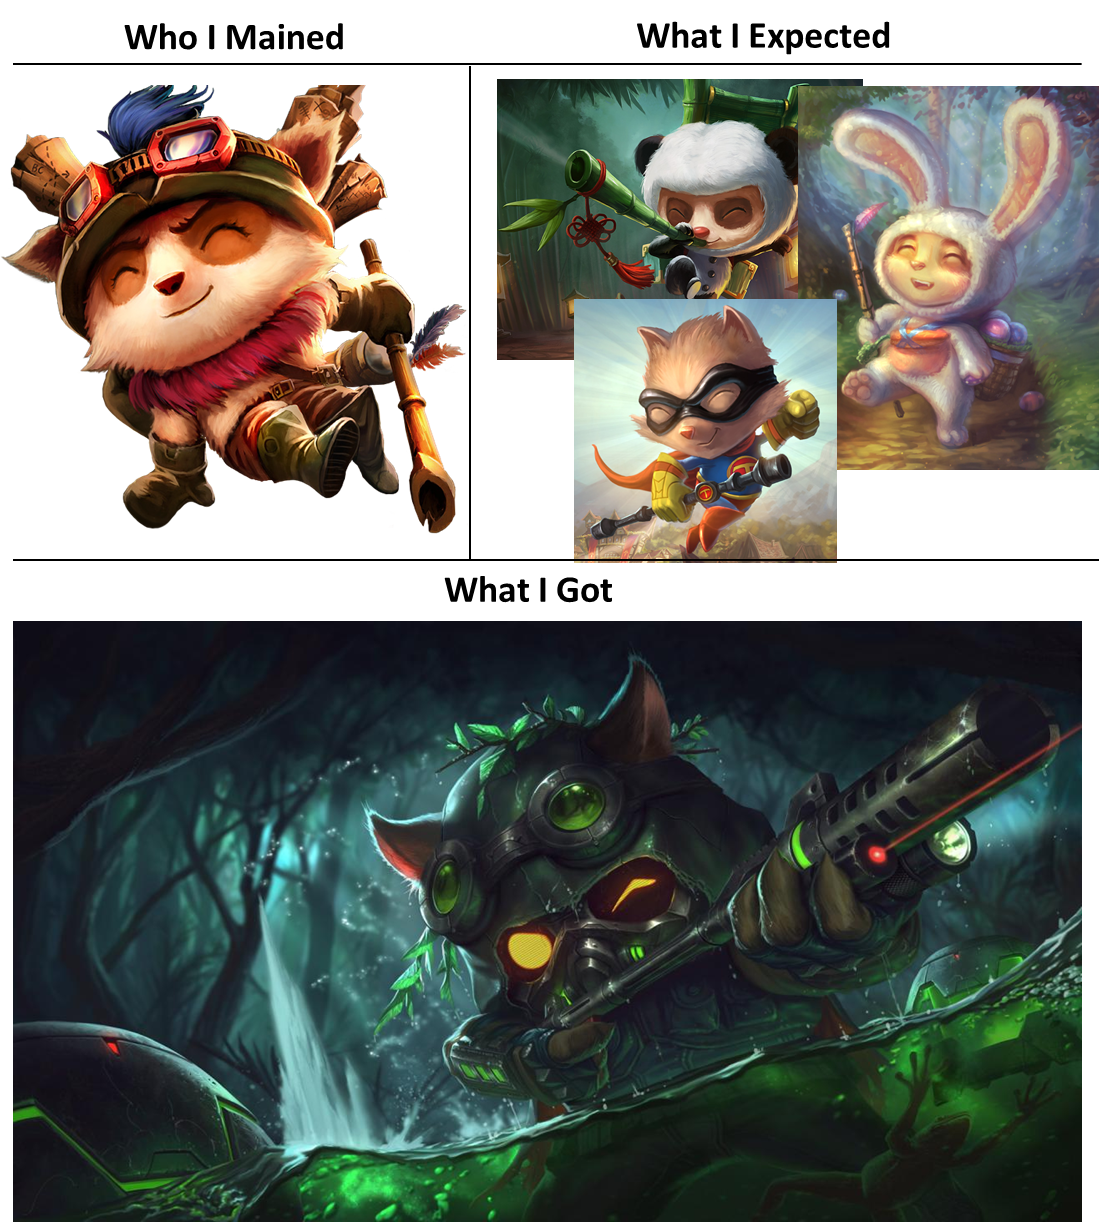 Omega Squad Teemo Is Best Teemo What I Watched What I Expected